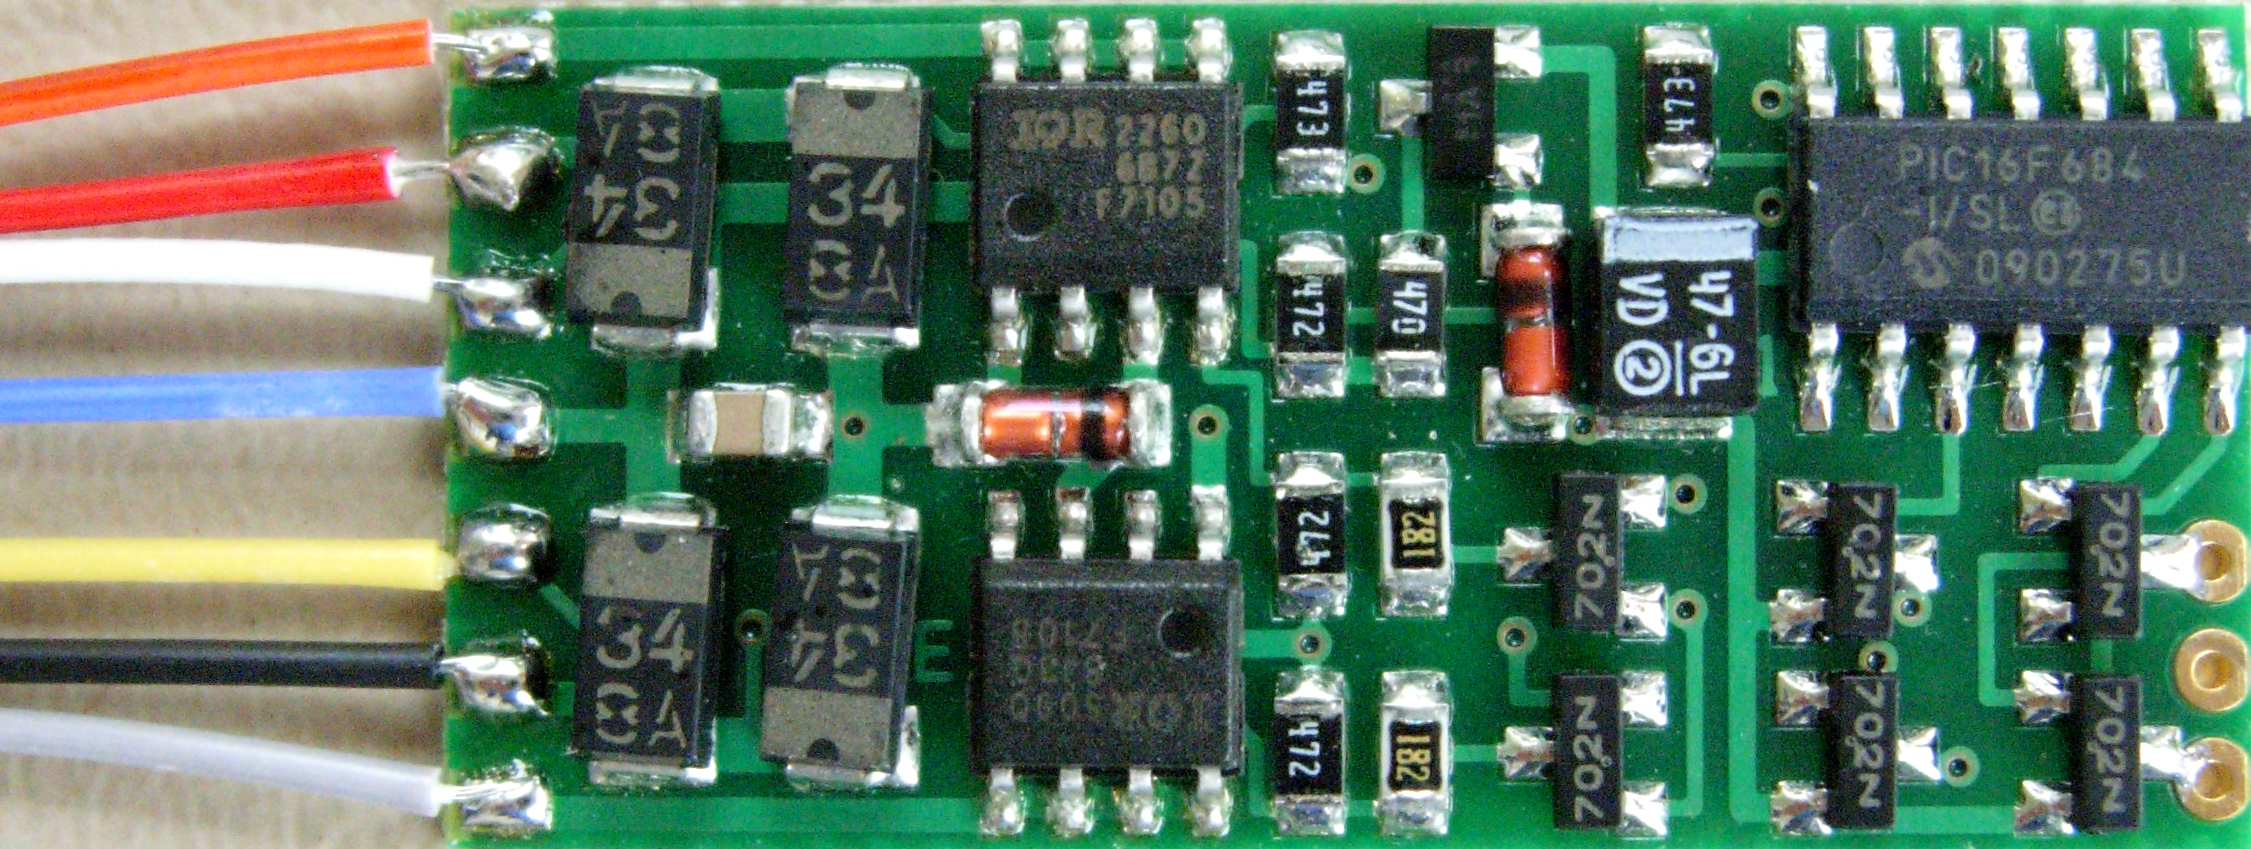 wiring diagram for nce dcc digitrax wiring diagram wiring